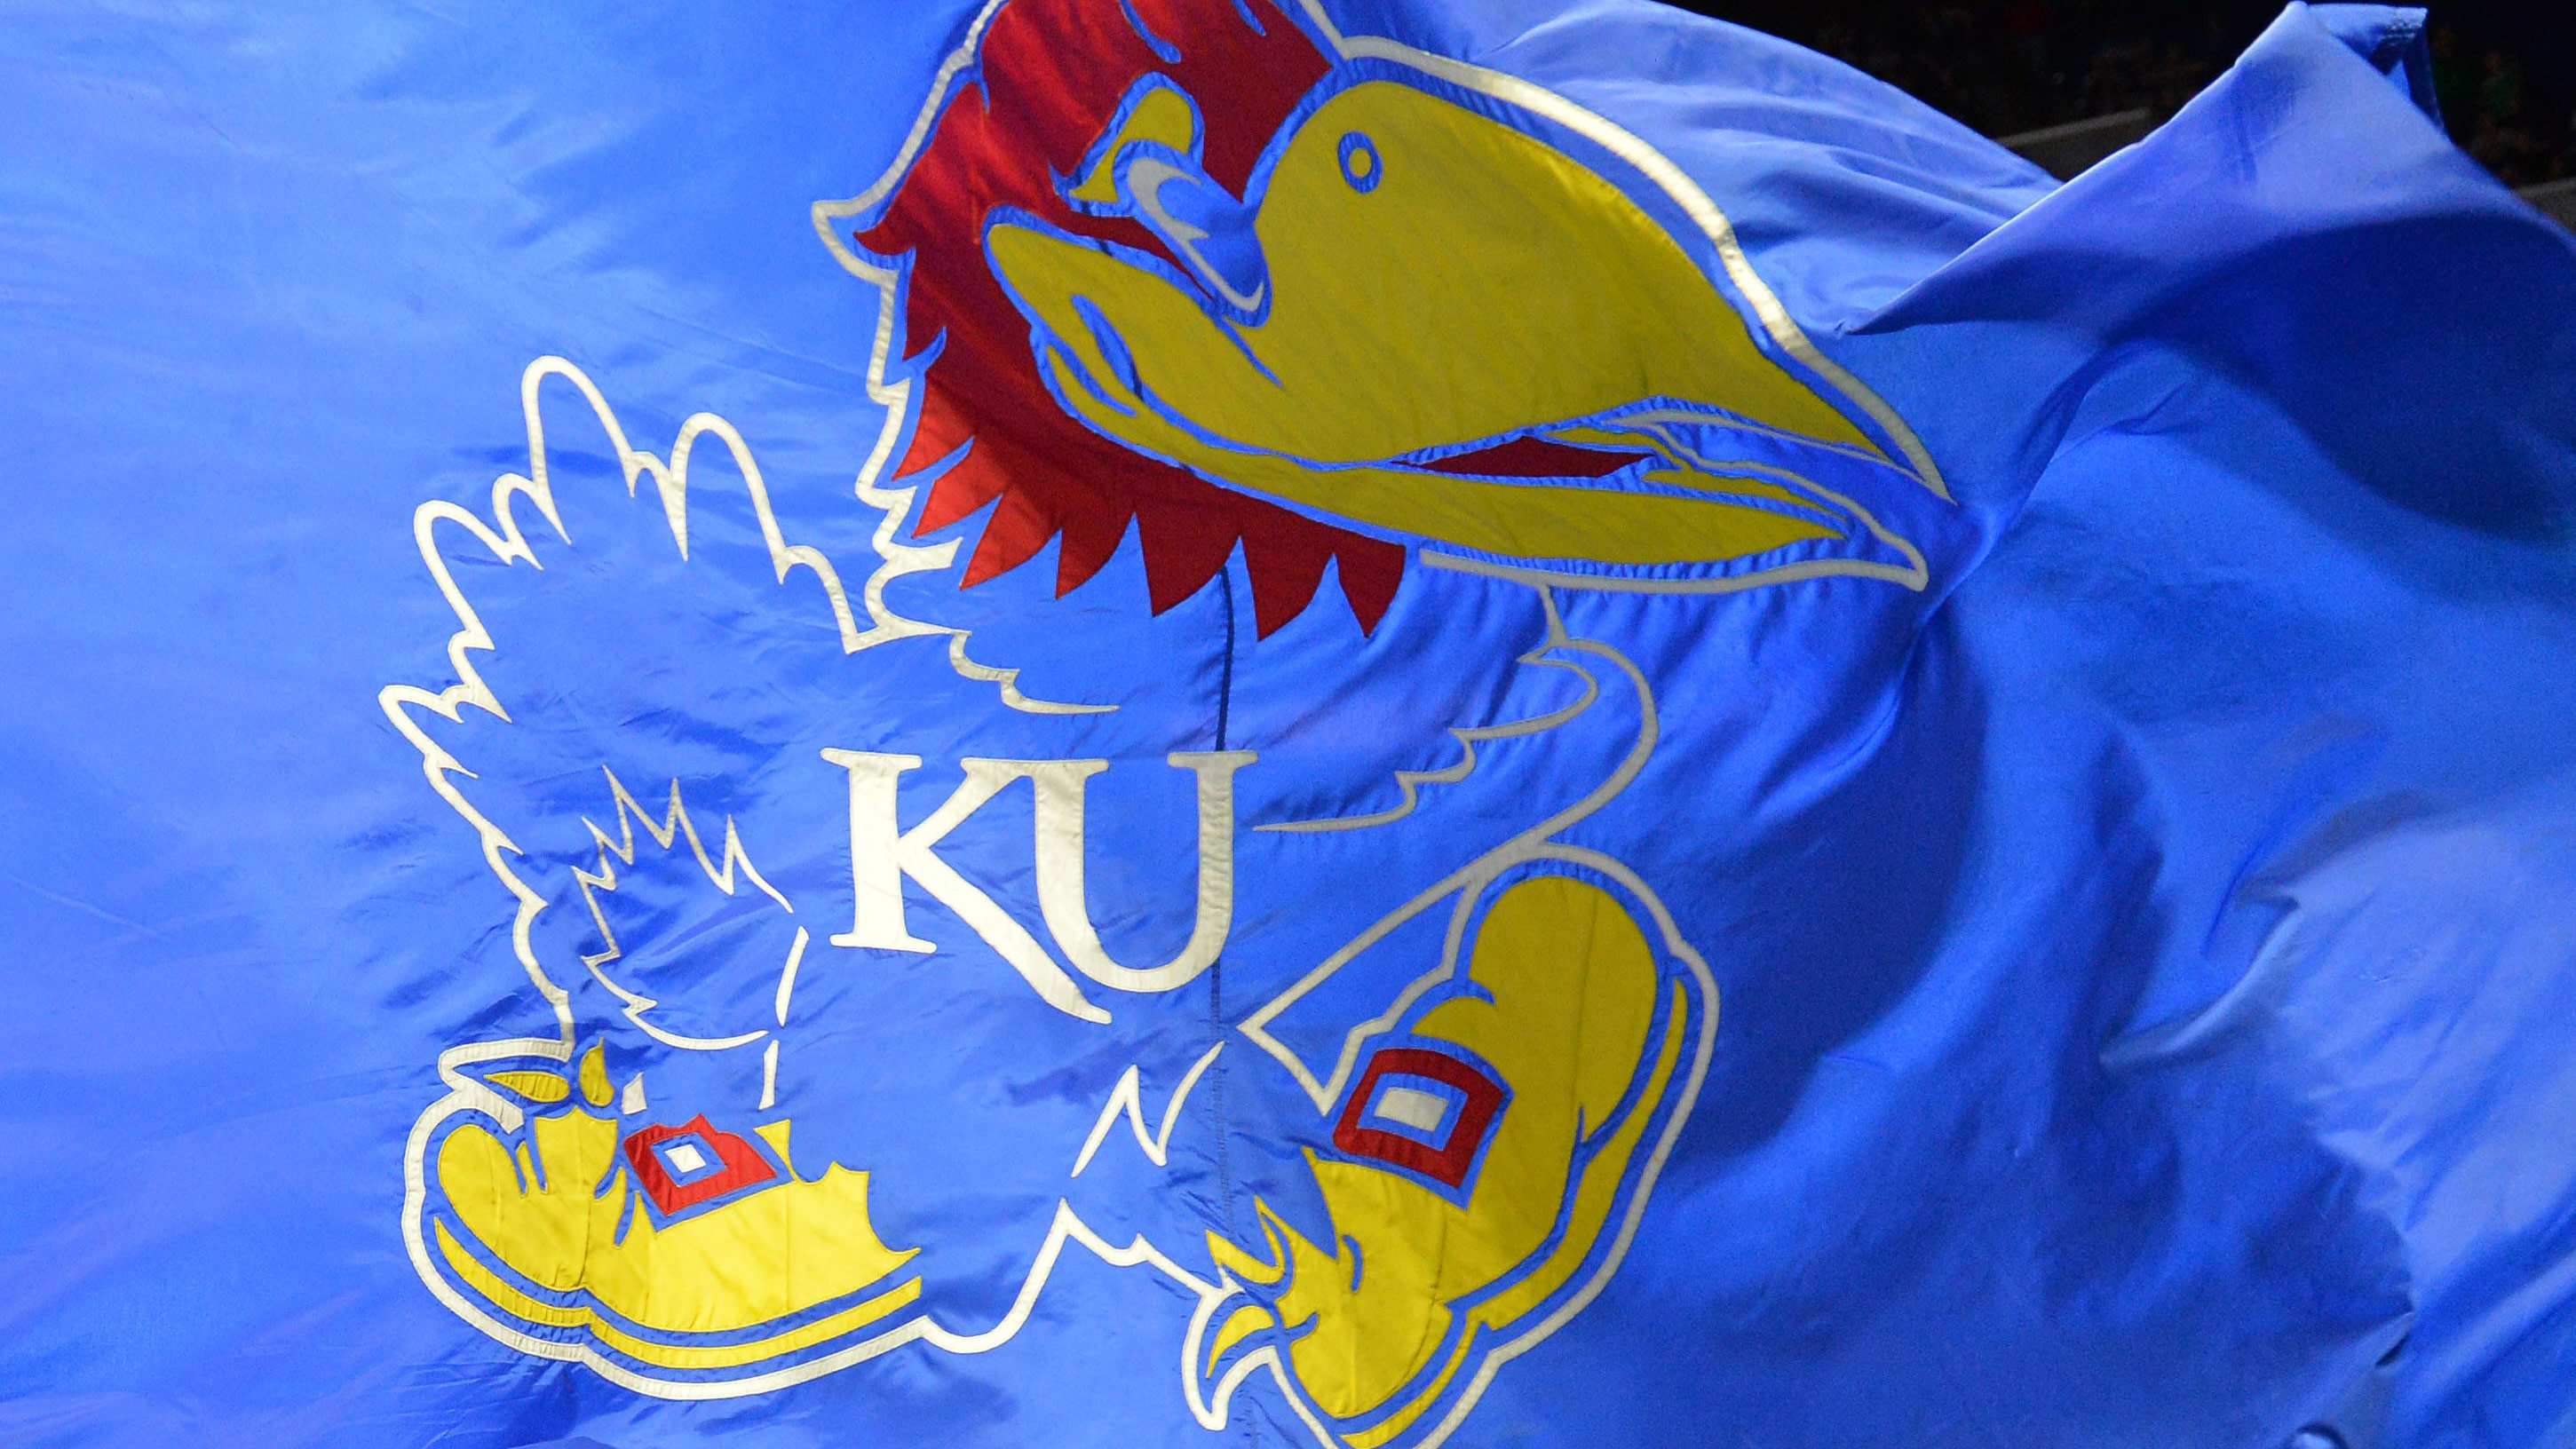 Mar 17, 2017; Tulsa, OK, USA; View of the Kansas Jayhawks flag during the second half against the UC Davis Aggies in the first round of the 2017 NCAA Tournament at BOK Center. Mandatory Credit: Brett Rojo-USA TODAY Sports